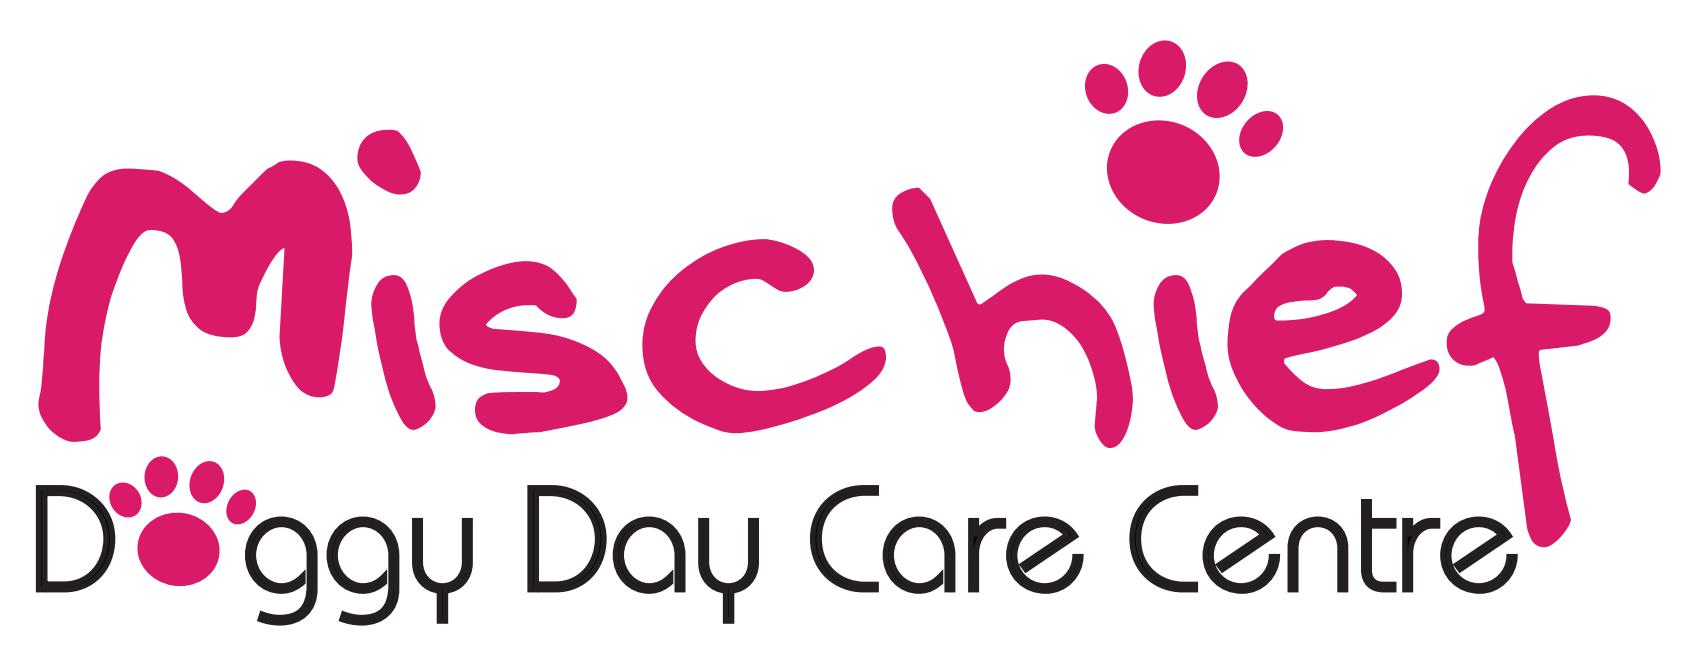 Mischief Doggy Day Care Centre